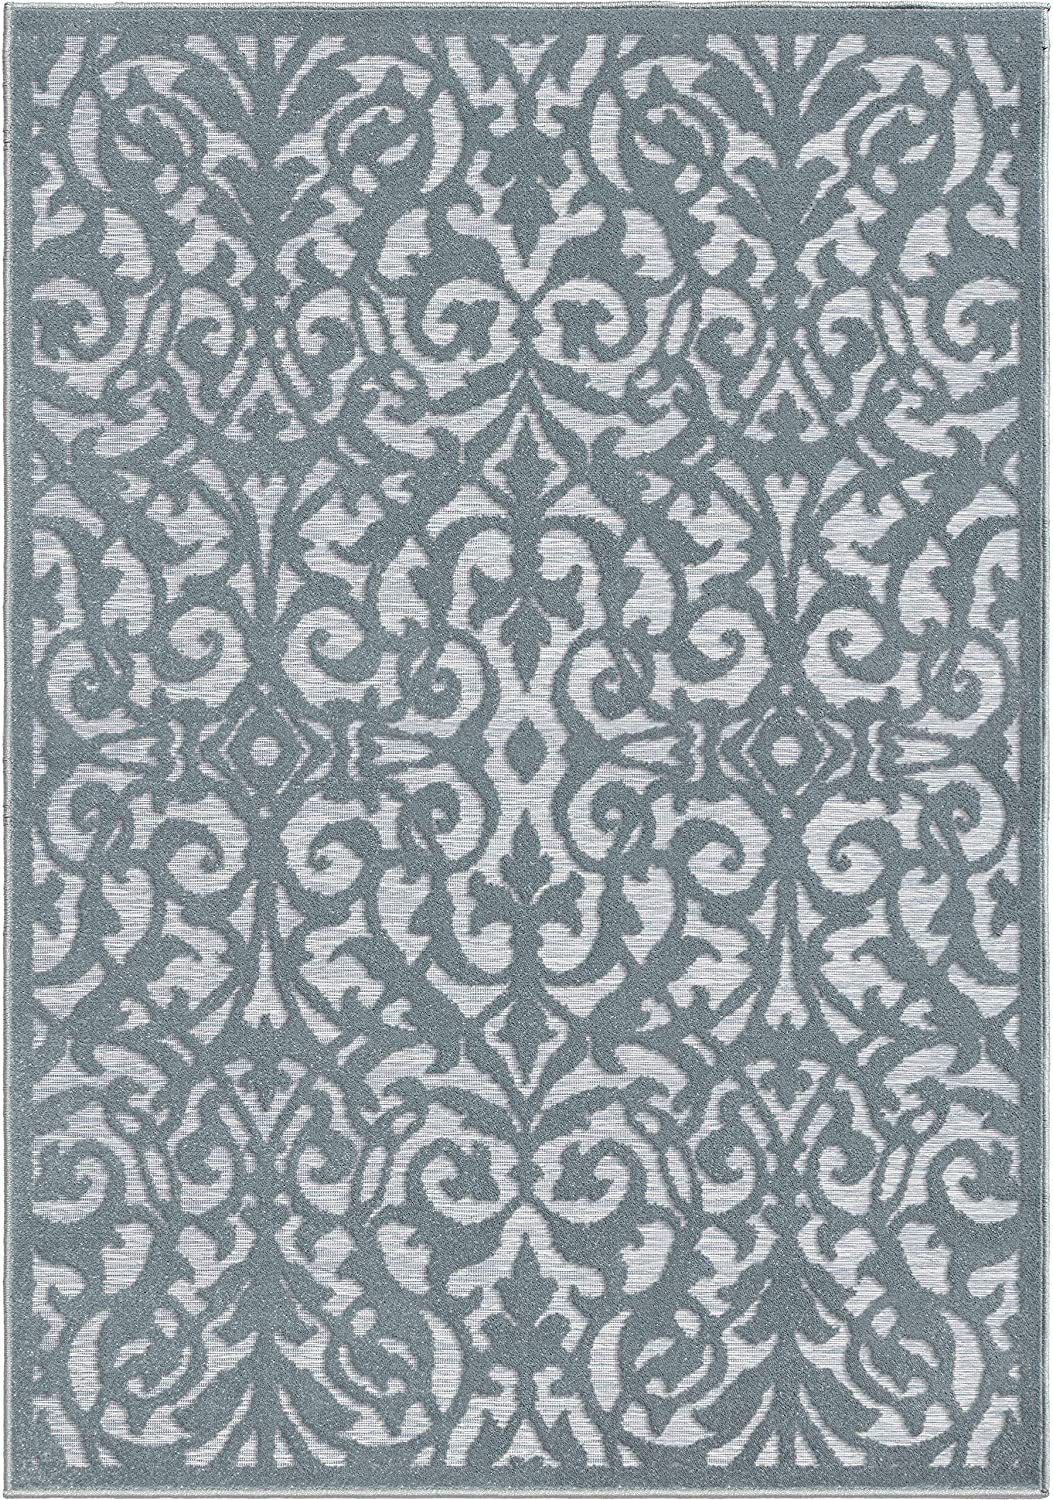 "Texas House Indoor/Outdoor Lady Bird Blue Area Rug 5'2"" X 7'6"" Floral Botanical Traditional Rectangle Polypropylene Contains Latex Stain Resistant"